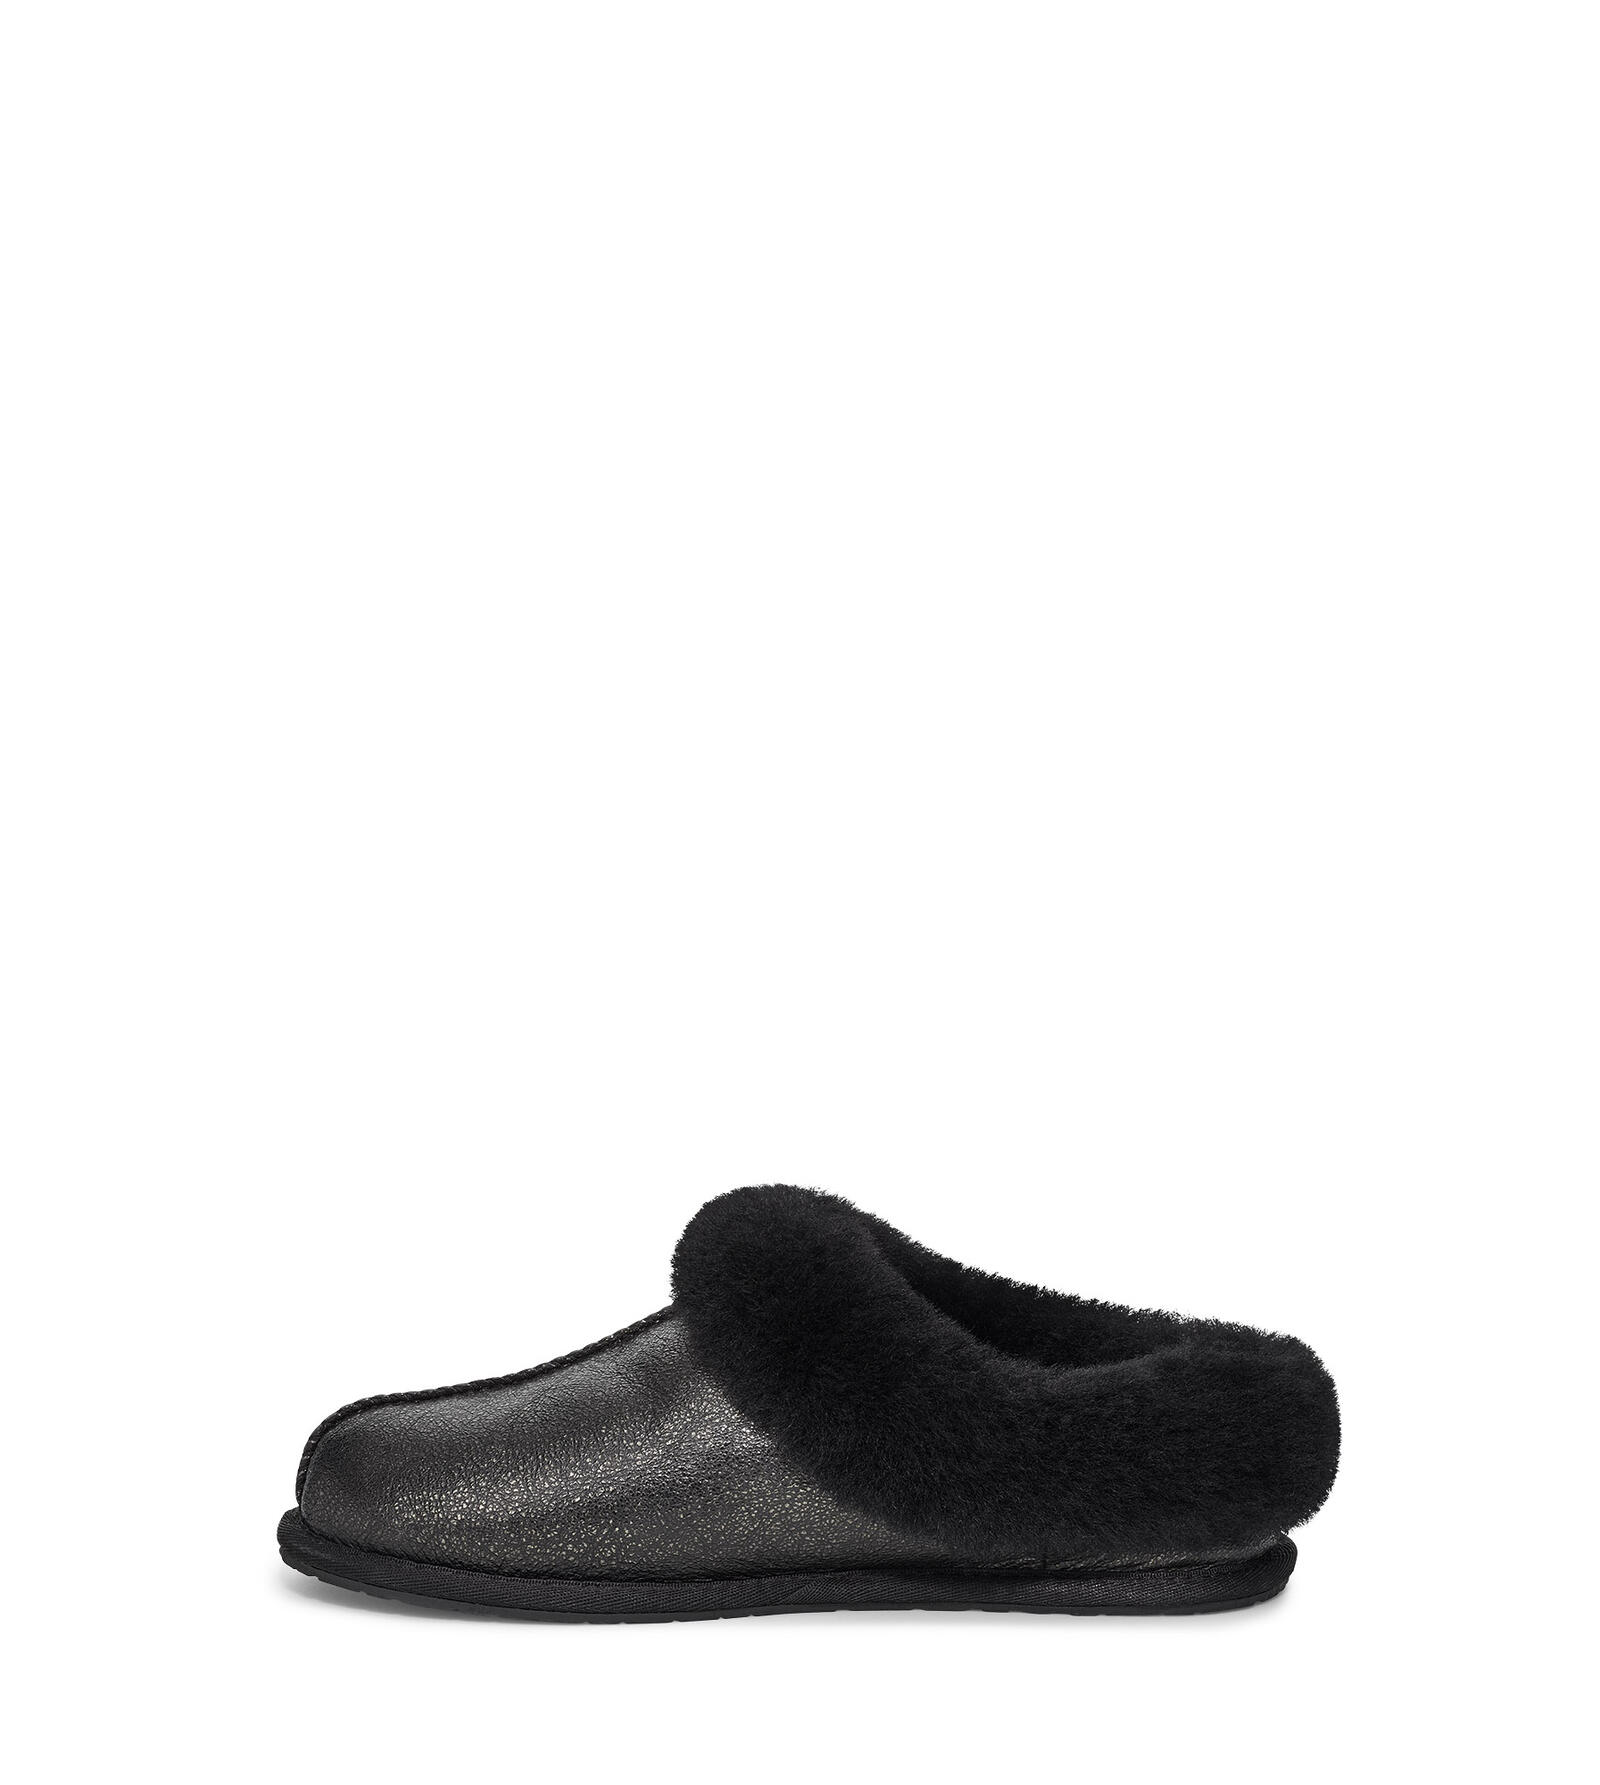 Moraene Iridescent Slipper